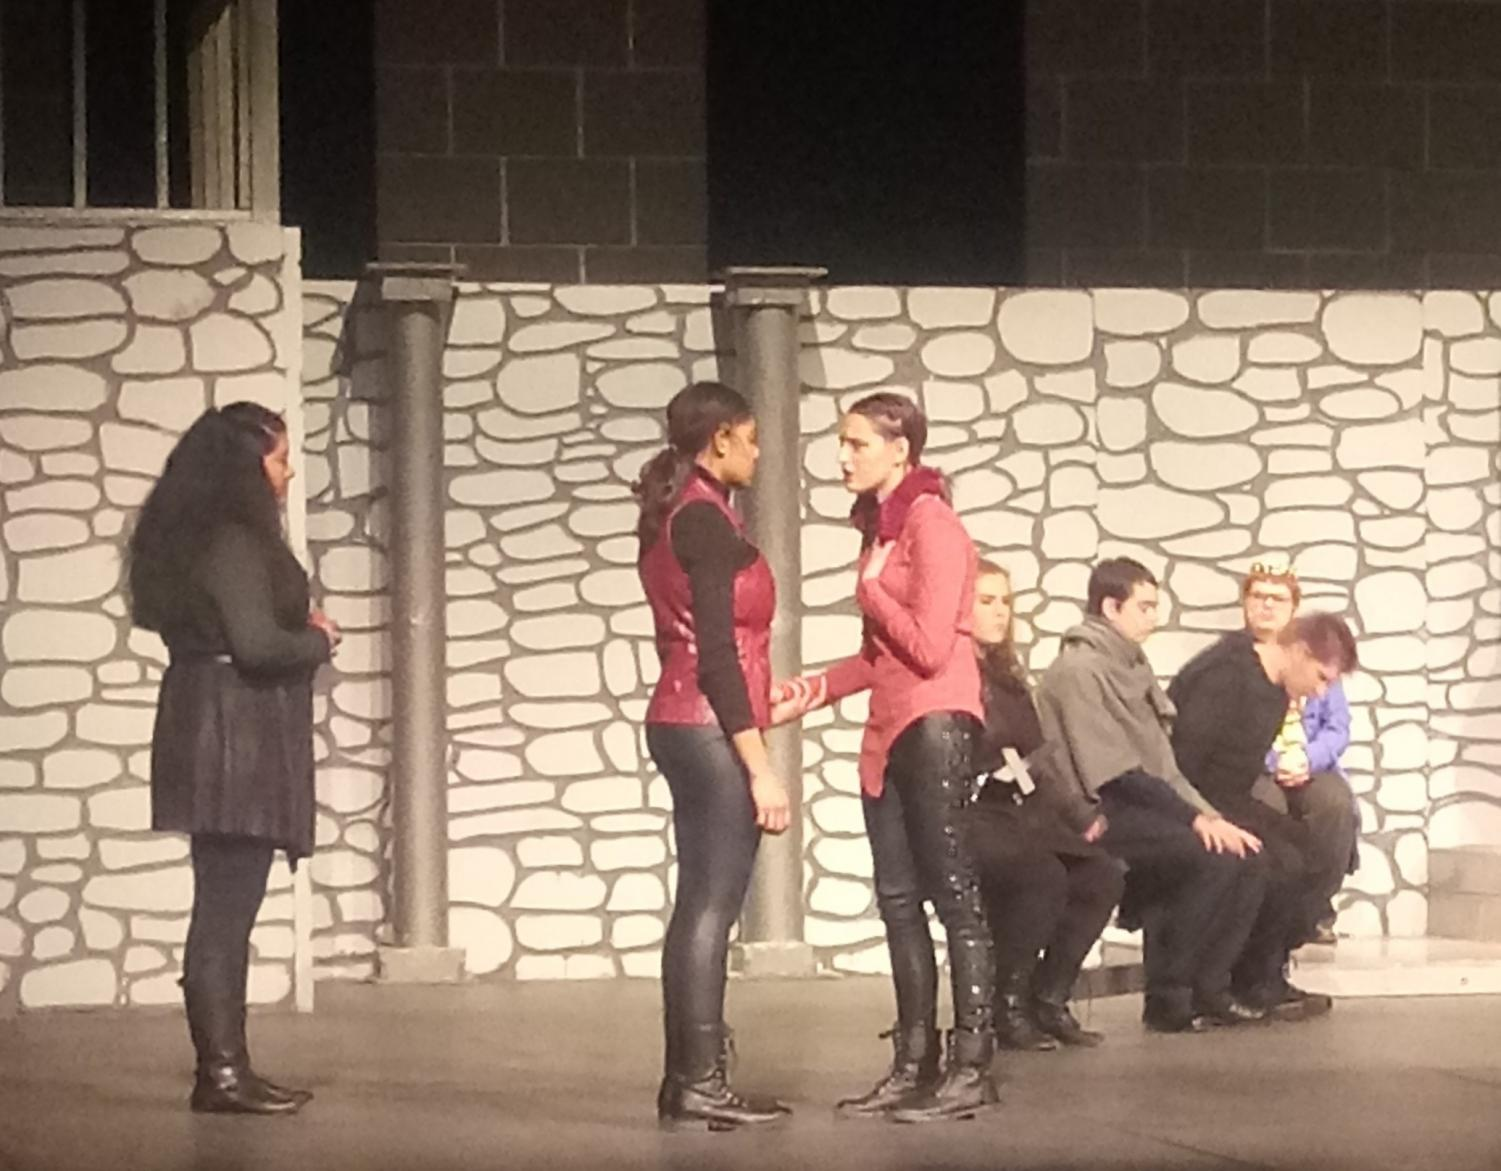 Hamlet confronting Leah before they fight. To try and settle what's between them before they fence, Hamlet apologizes to Leah, who appreciates it but doesn't accept